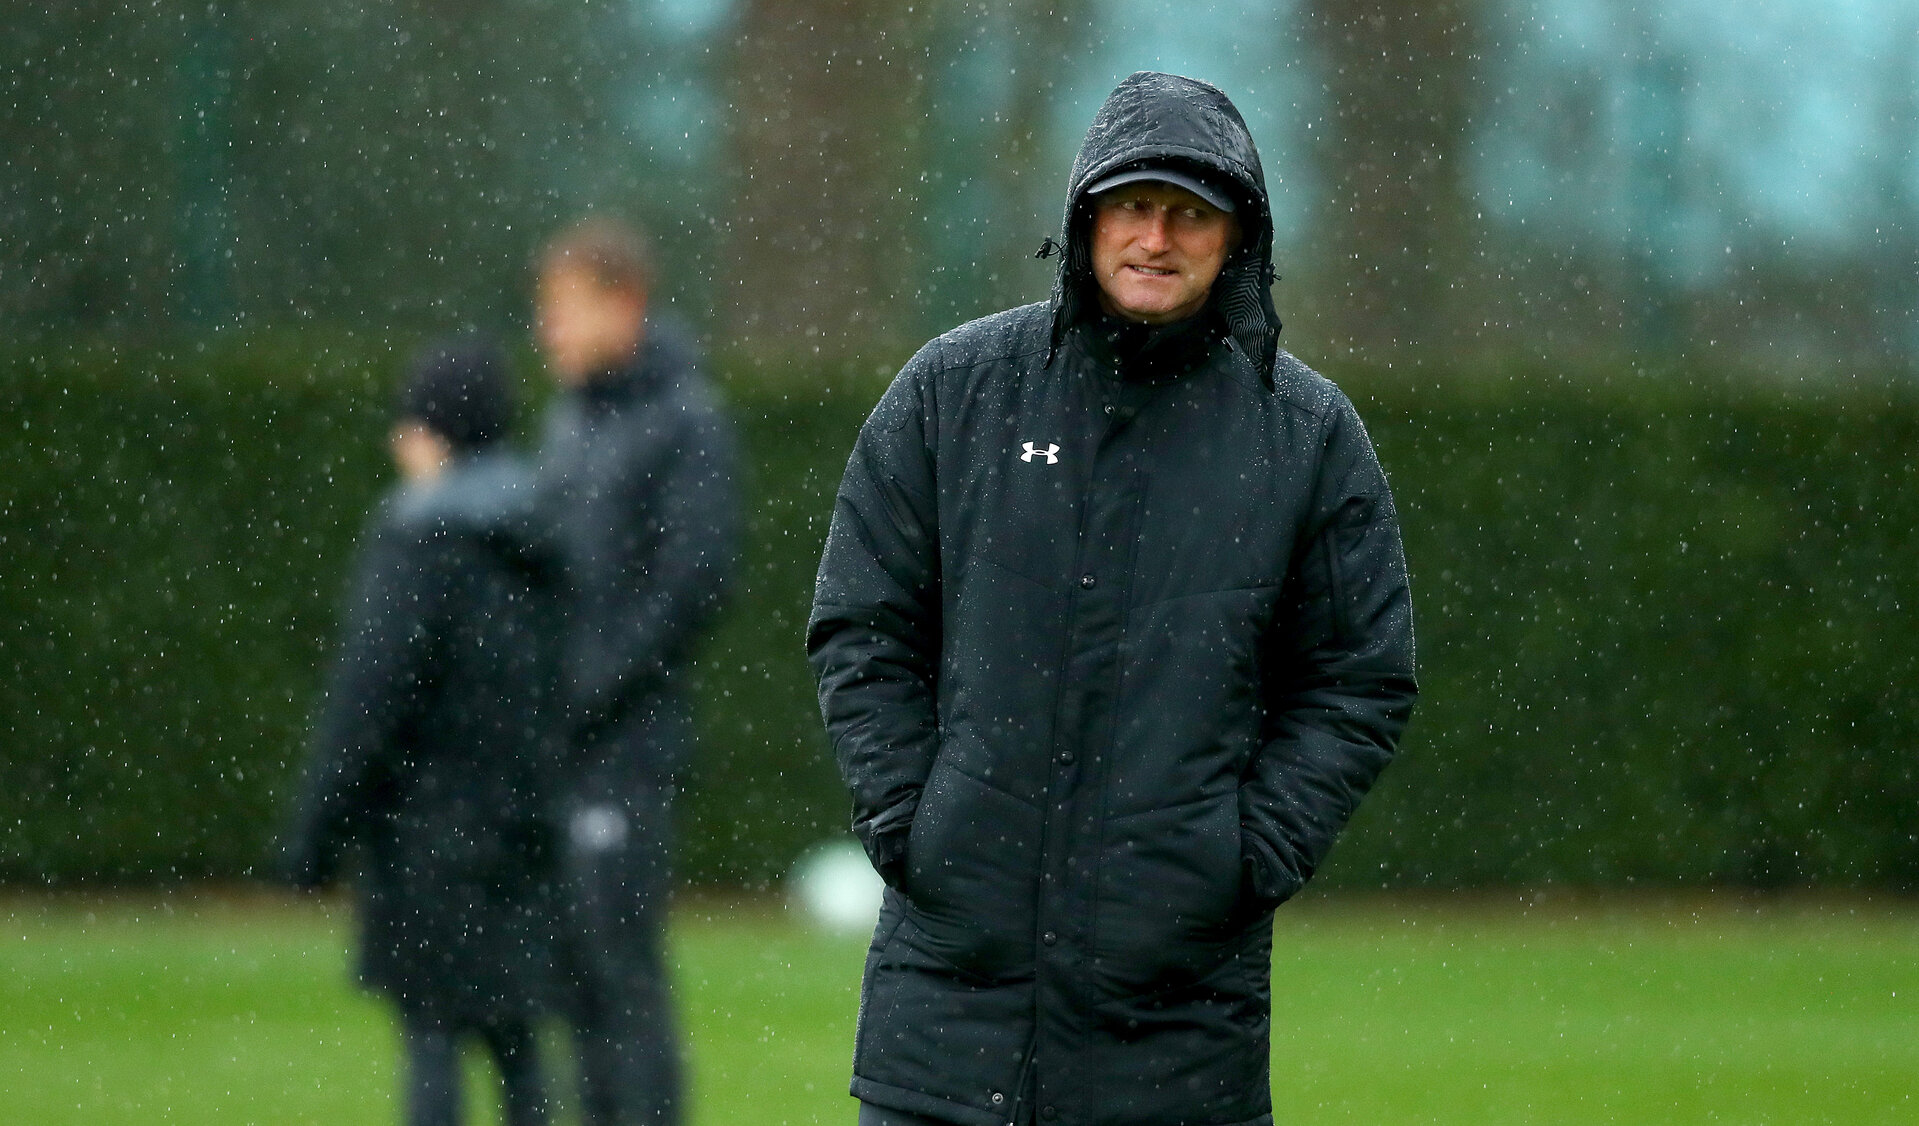 SOUTHAMPTON, ENGLAND - APRIL 04: Ralph Hasenhuttl during a Southampton FC training session at the Staplewood Campus on April 04, 2019 in Southampton, England. (Photo by Matt Watson/Southampton FC via Getty Images)